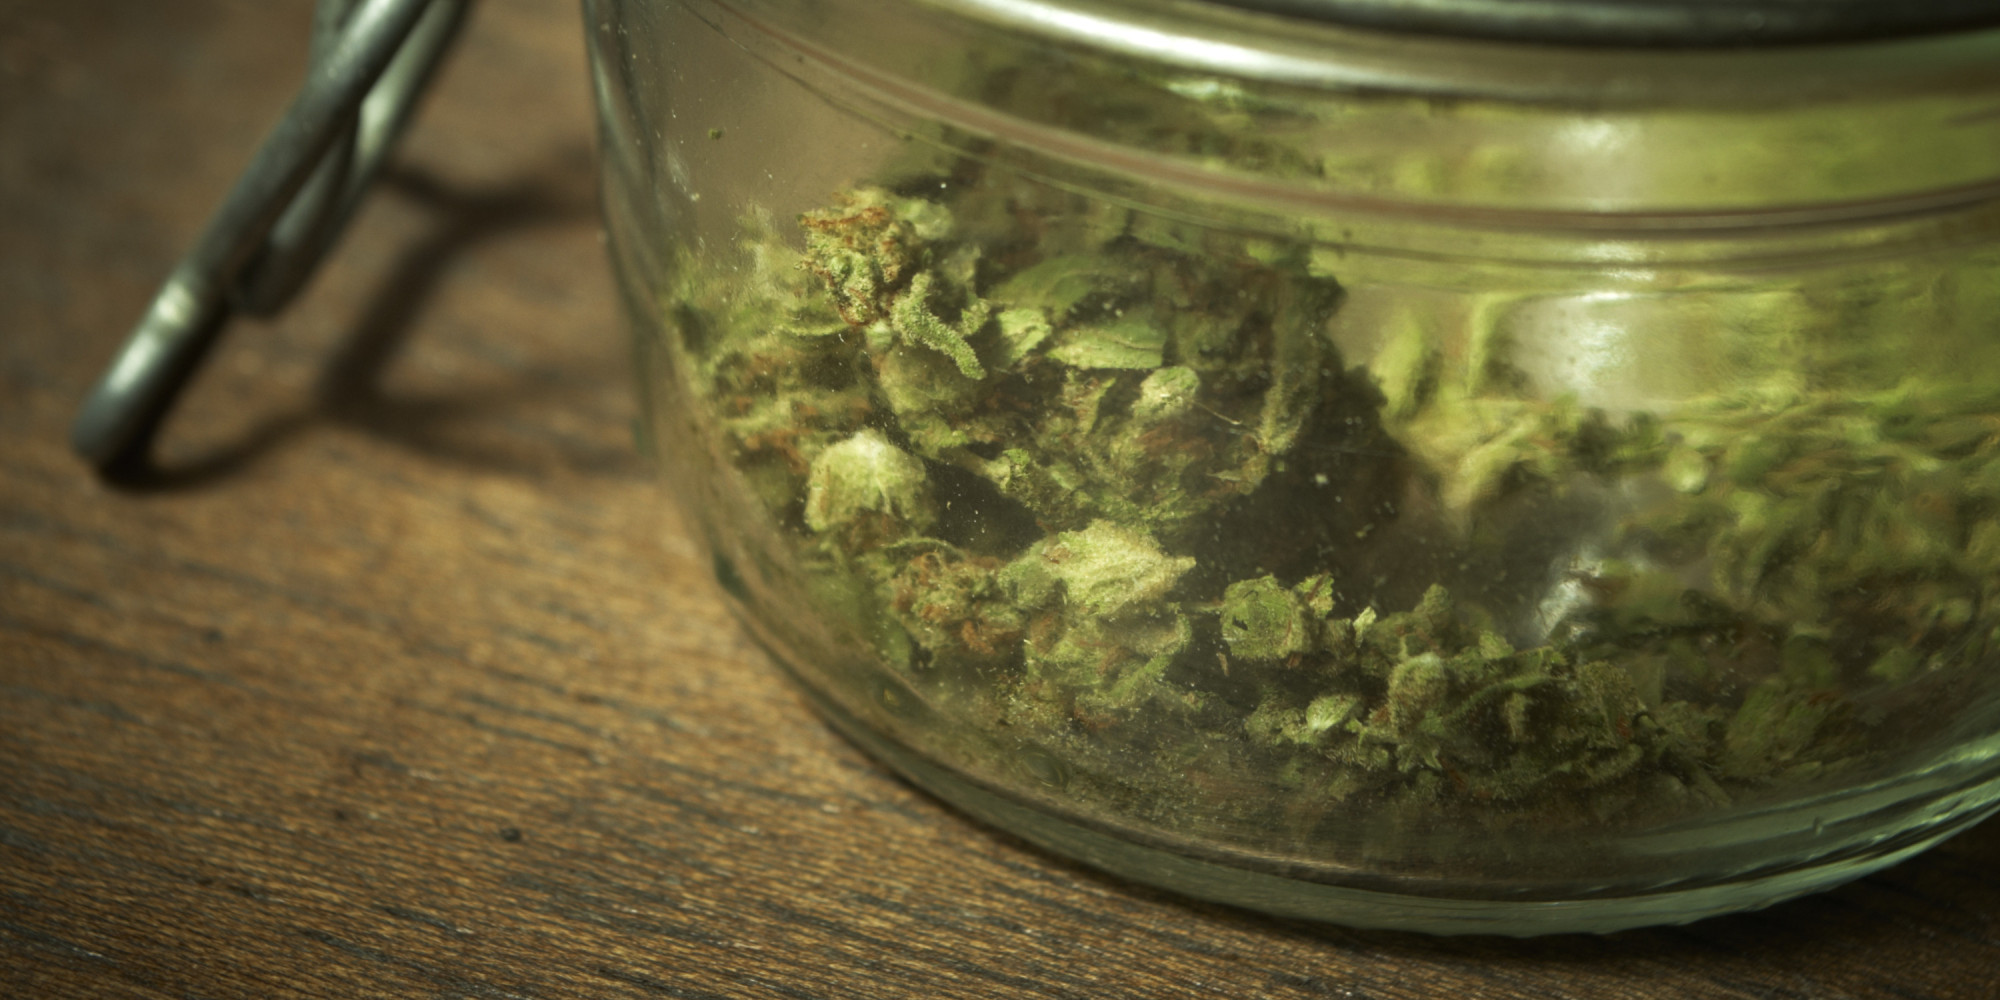 medical marijuana definition Medical marijuana uses the marijuana plant or chemicals in it to treat diseases or conditions it's basically the same product as recreational marijuana, but it's taken for medical purposes.